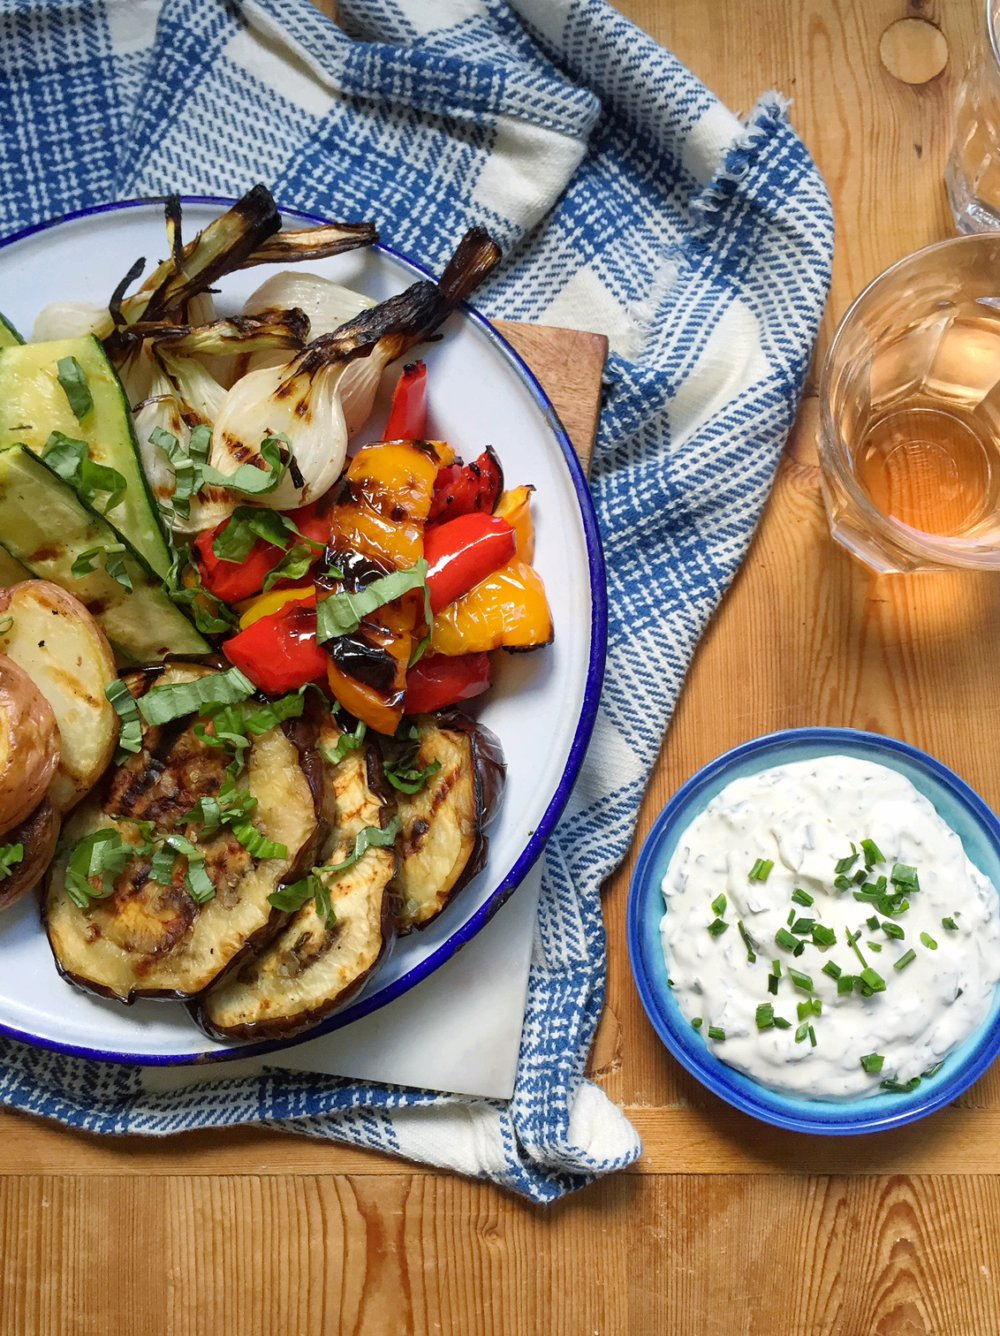 Herb Crème Fraiche with Grilled Vegetables